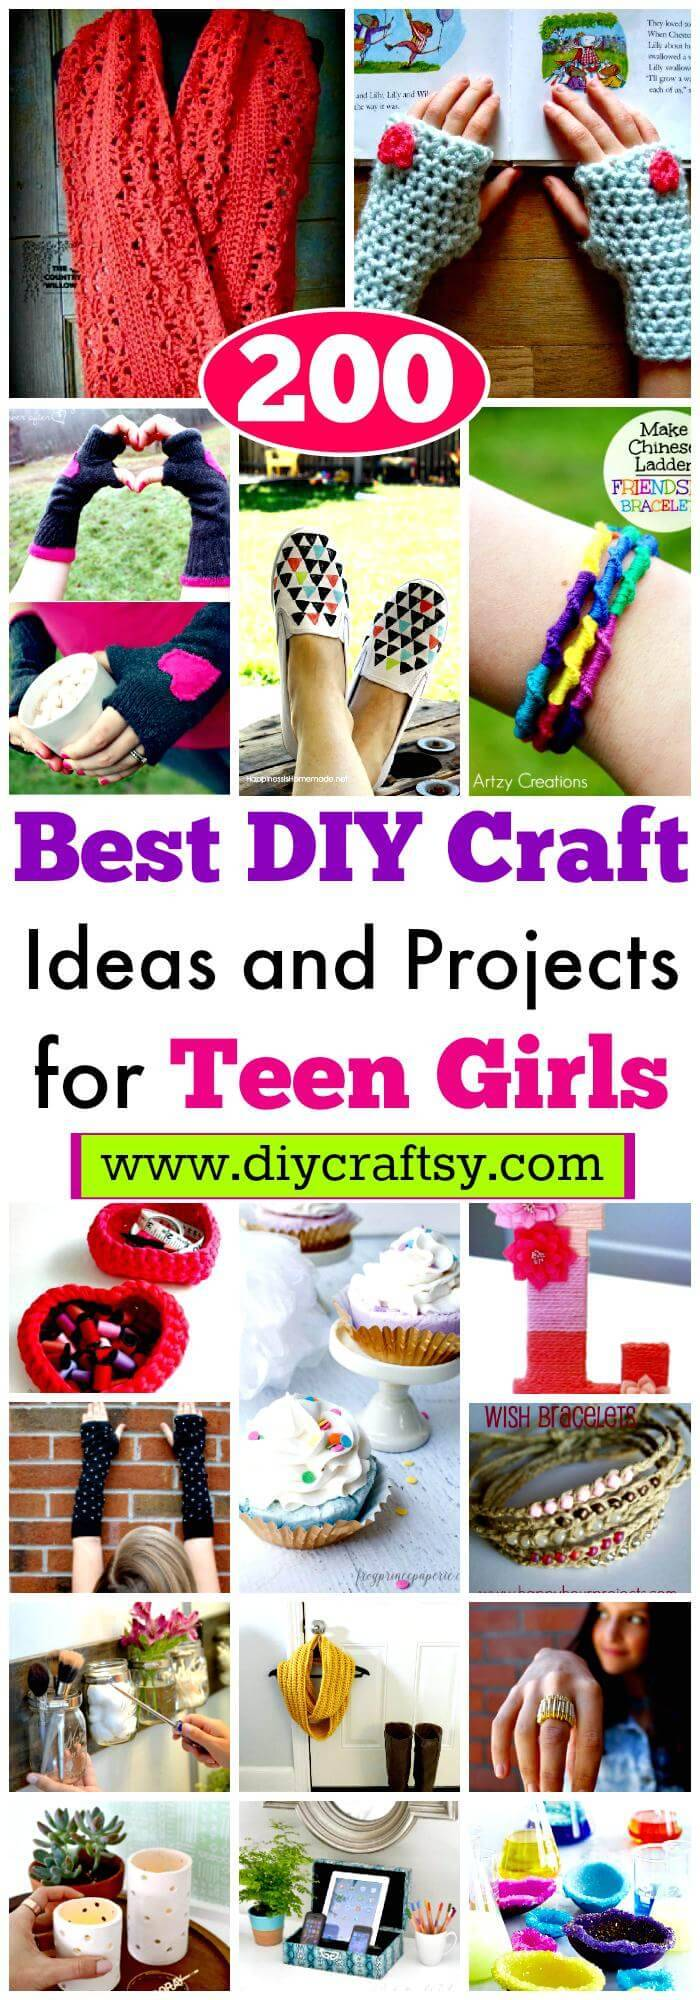 diy projects craft ideas 200 best diy craft ideas and projects for teen diy 4257